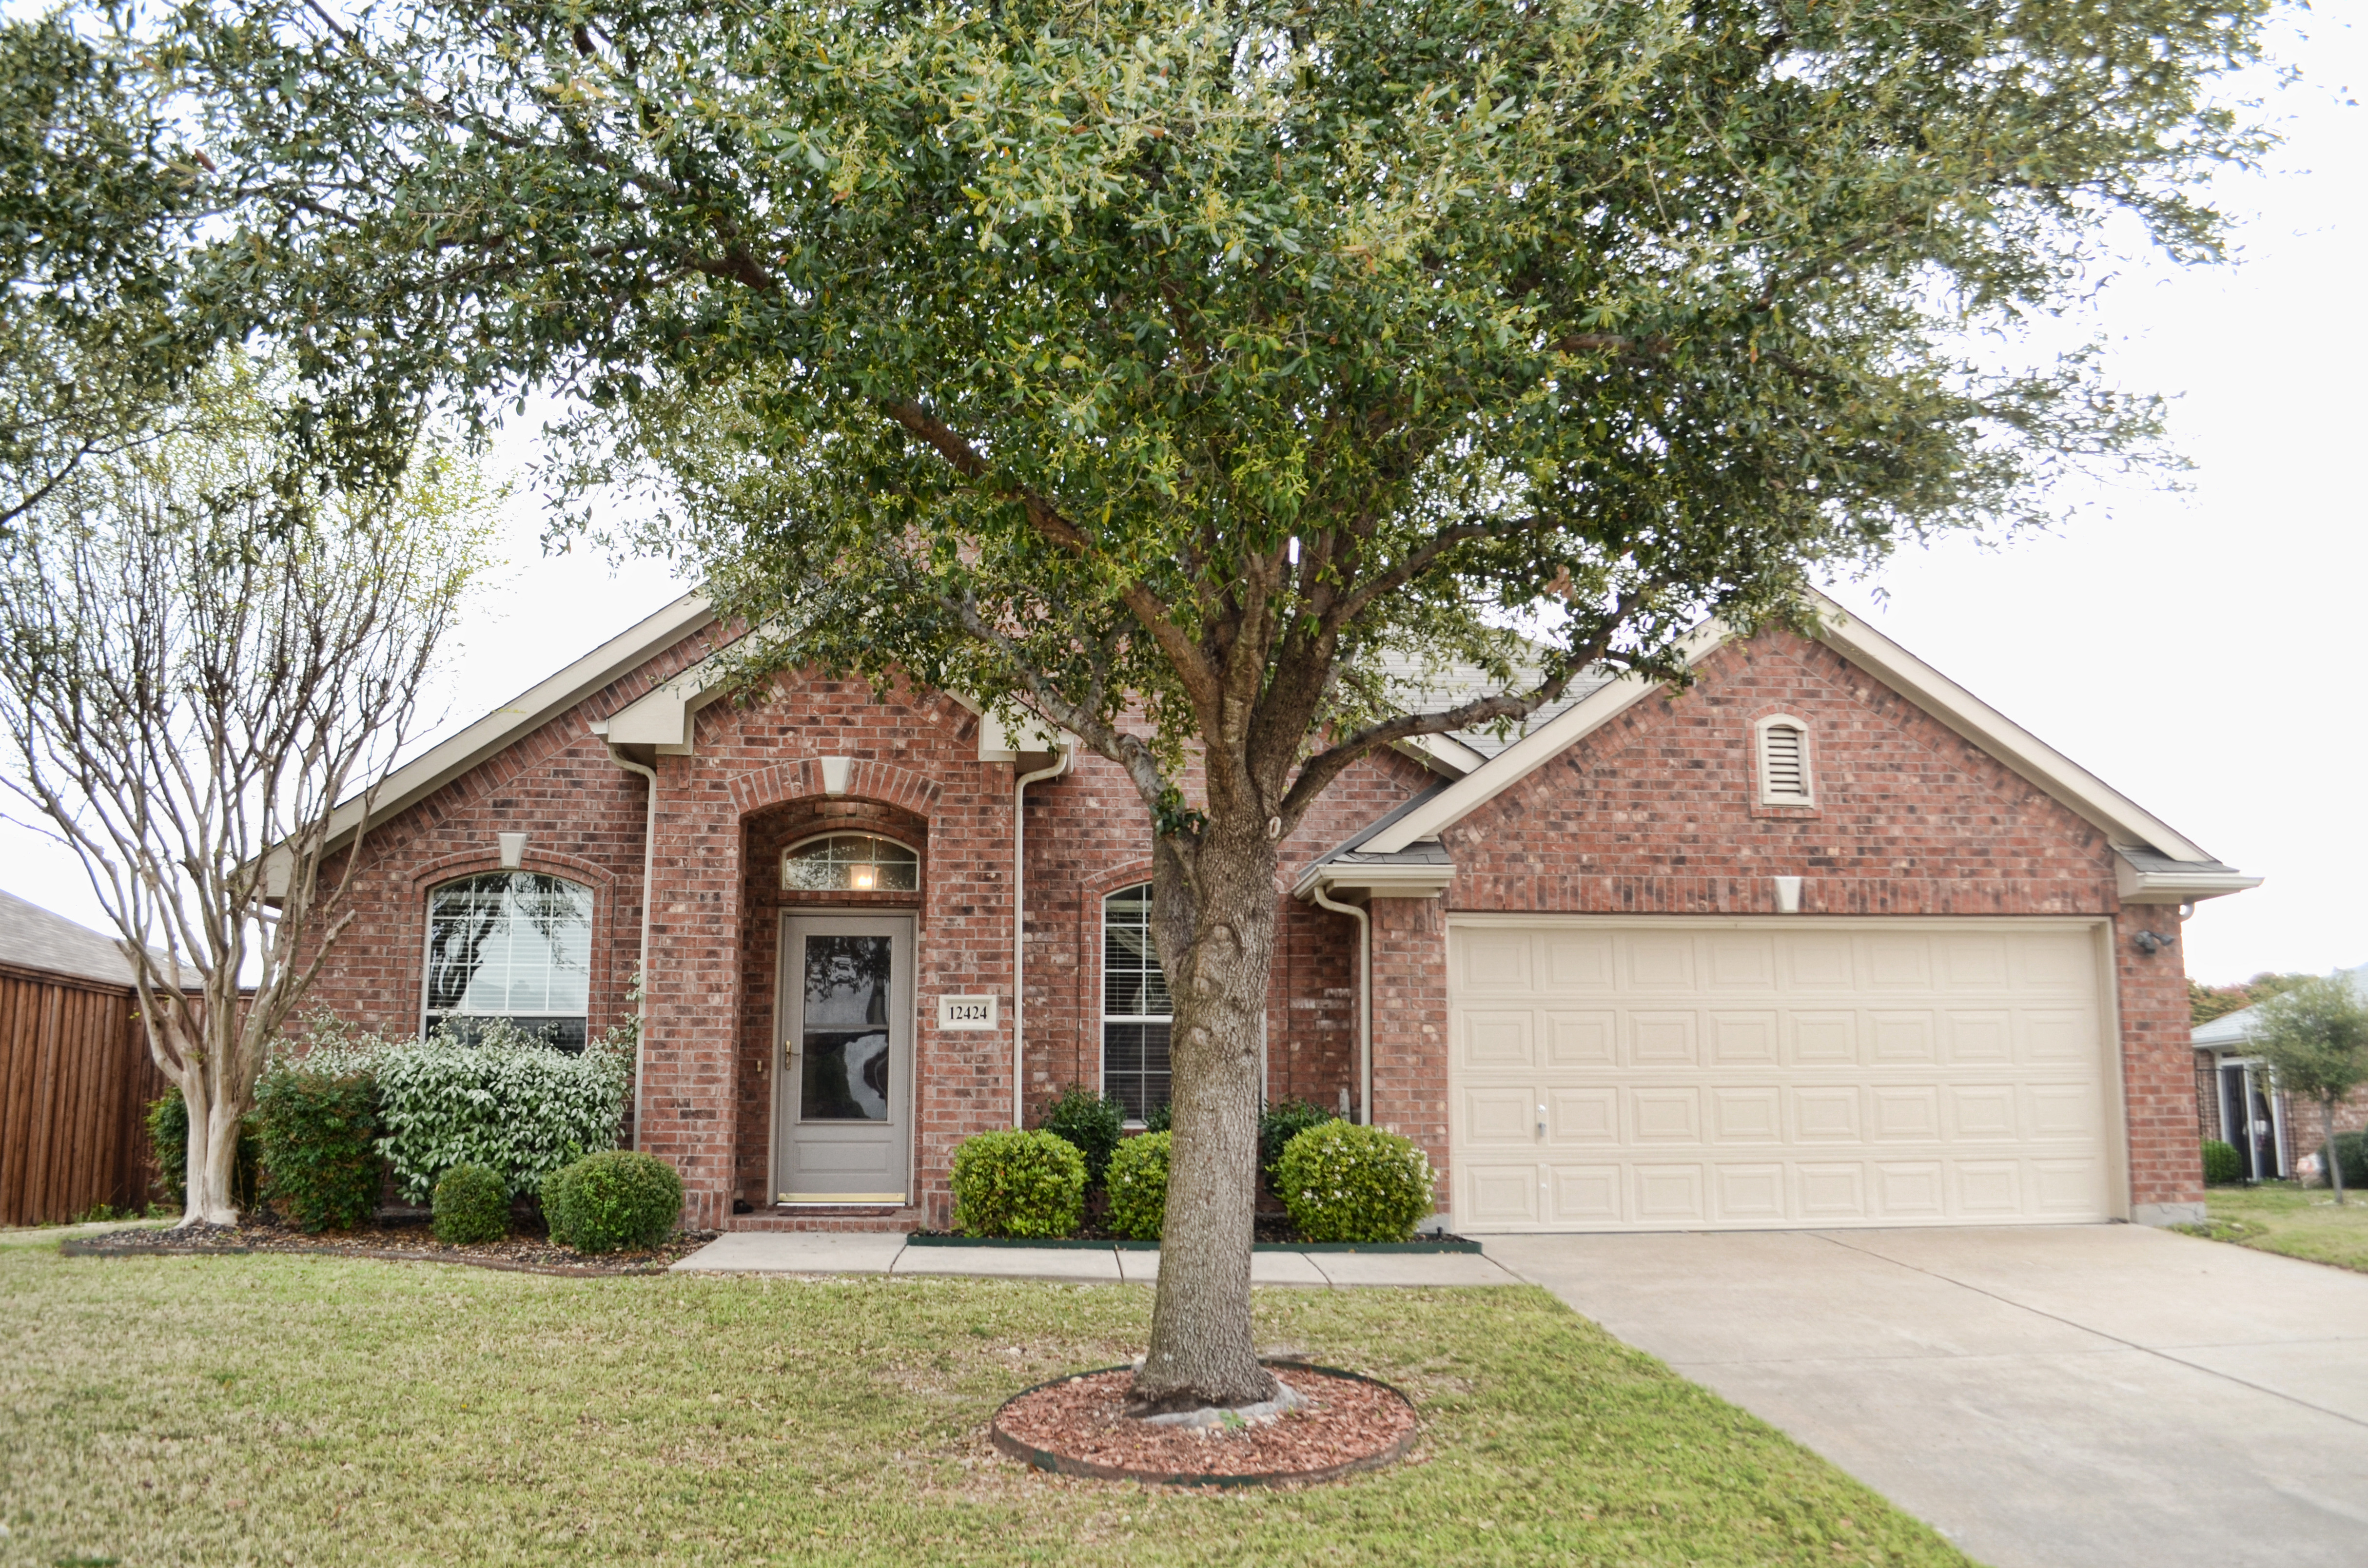 1 story frisco tx home for sale